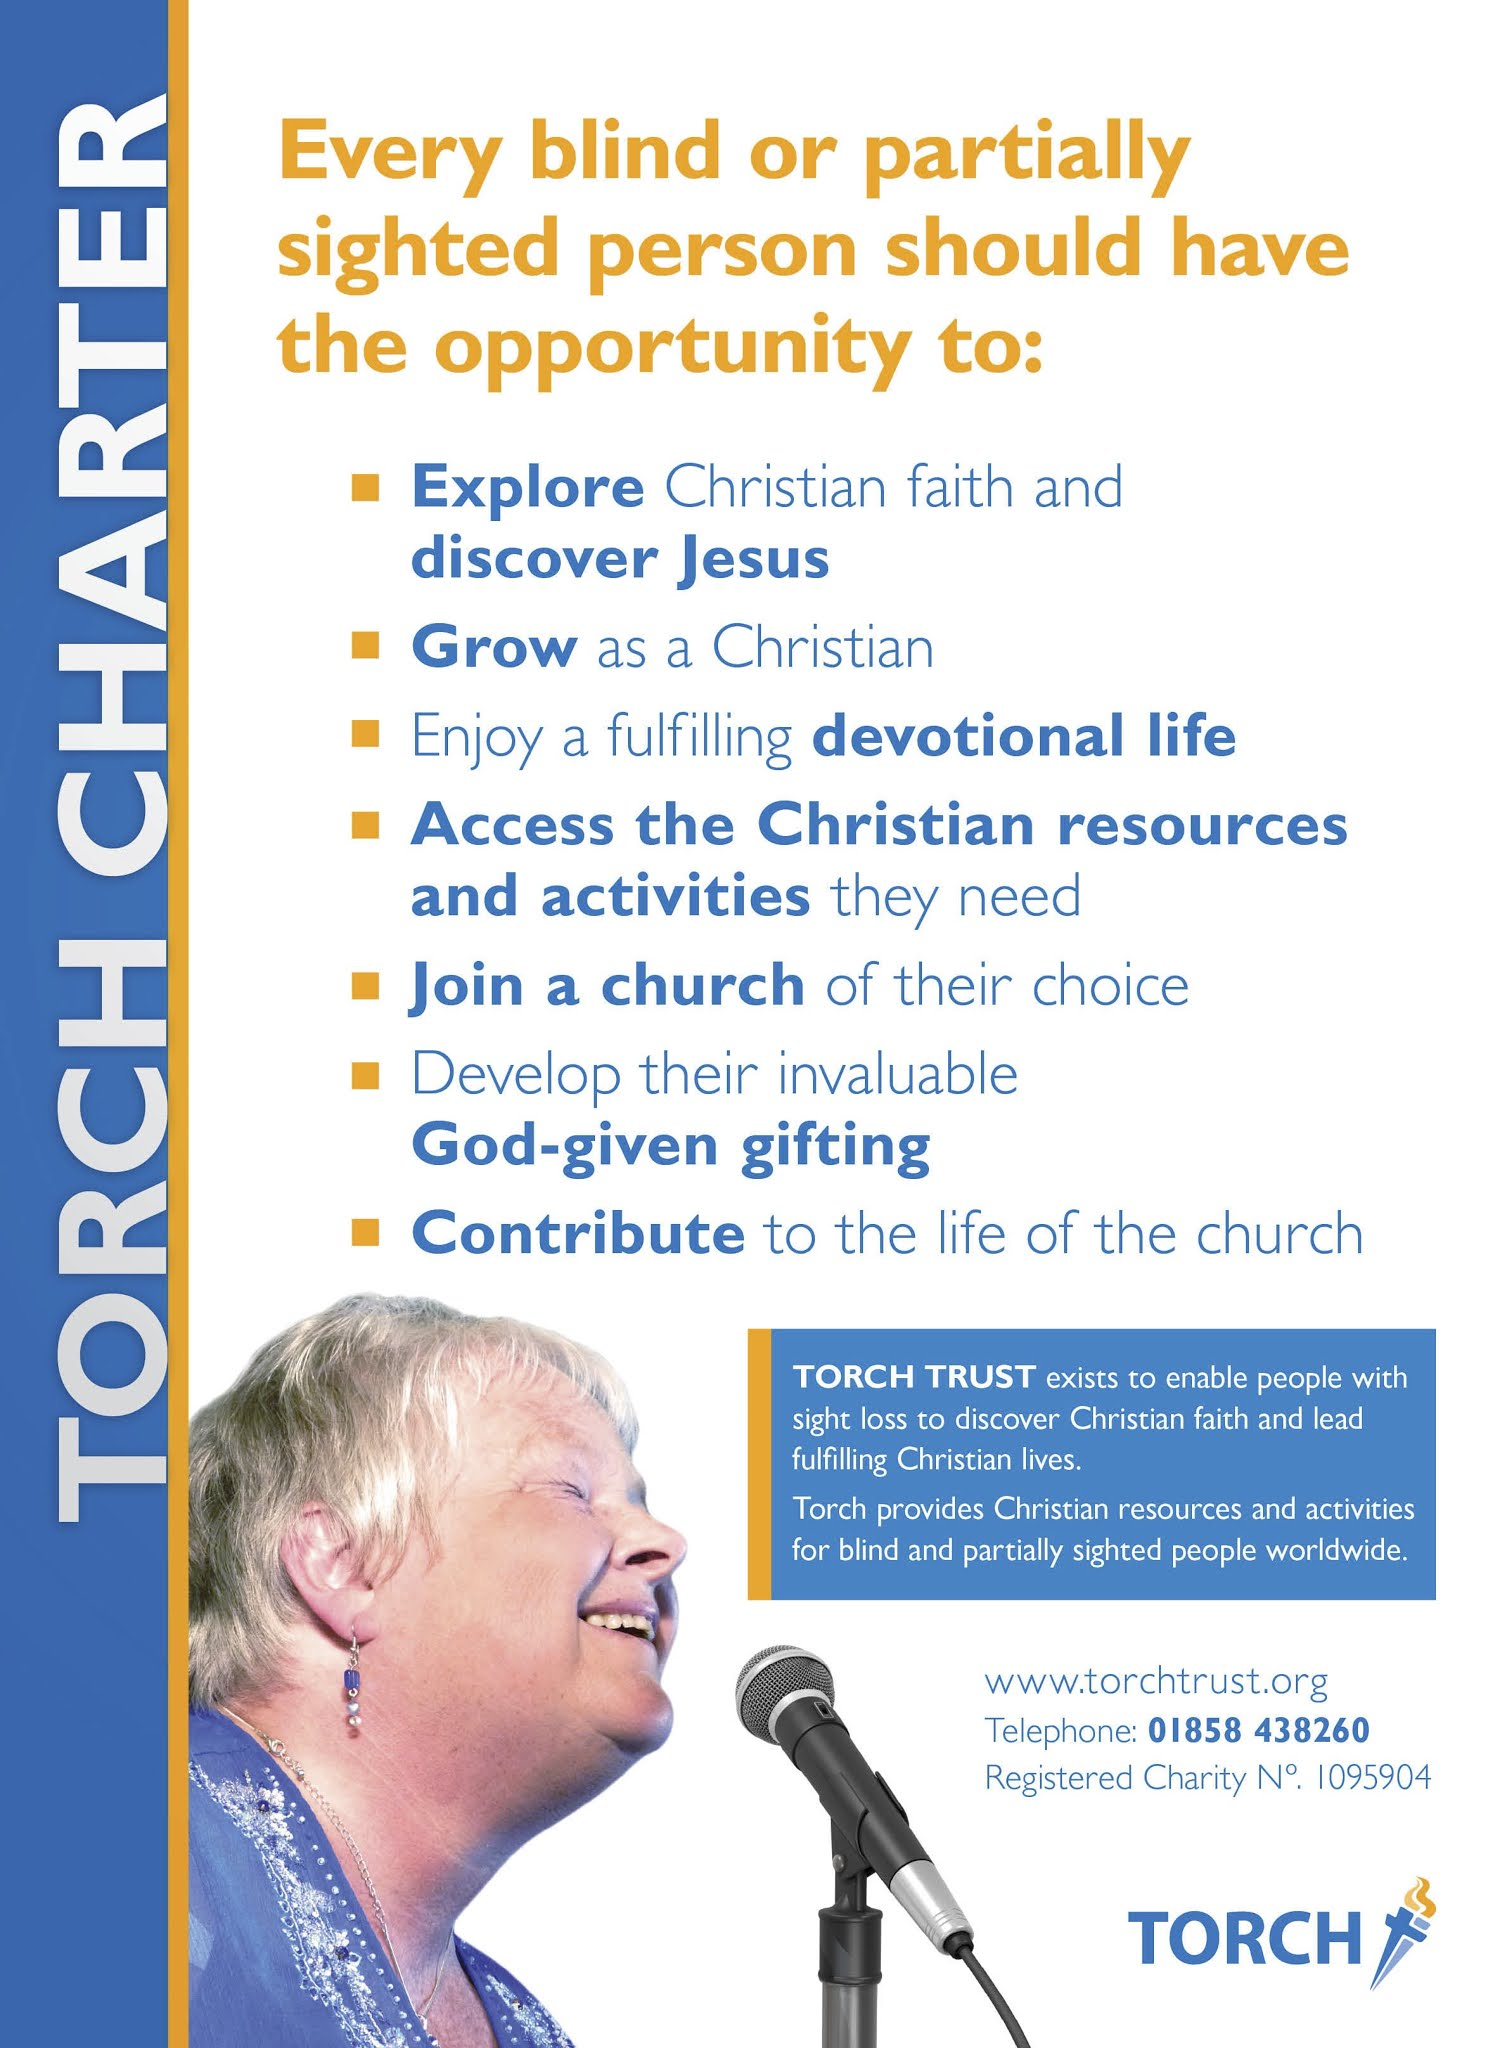 """Text reads: """"Every blind or partially sighted person should have the opportunity to: EXPLORE Christian faith and DISCOVER JESUS, GROW as a Christian, Enjoy a fulfilling DEVOTIONAL LIFE, ACCESS THE CHRISTIAN RESOURCES AND ACTIVITIES they need, JOIN A CHURCH of their choice, Develop their invaluable GOD-GIVEN GIFTING, CONTRIBUTE to thelife of the church.""""  TORCH TRUST exists to enable people with sight loss to discover Christian faith andlead fulfilling Christian Lives. Torch provides Christian resources and activities for blind and partially sighted people worldwide.  www.torchtrust.org. Telephone: 01858 438260. Registered Charity No: 1095904."""